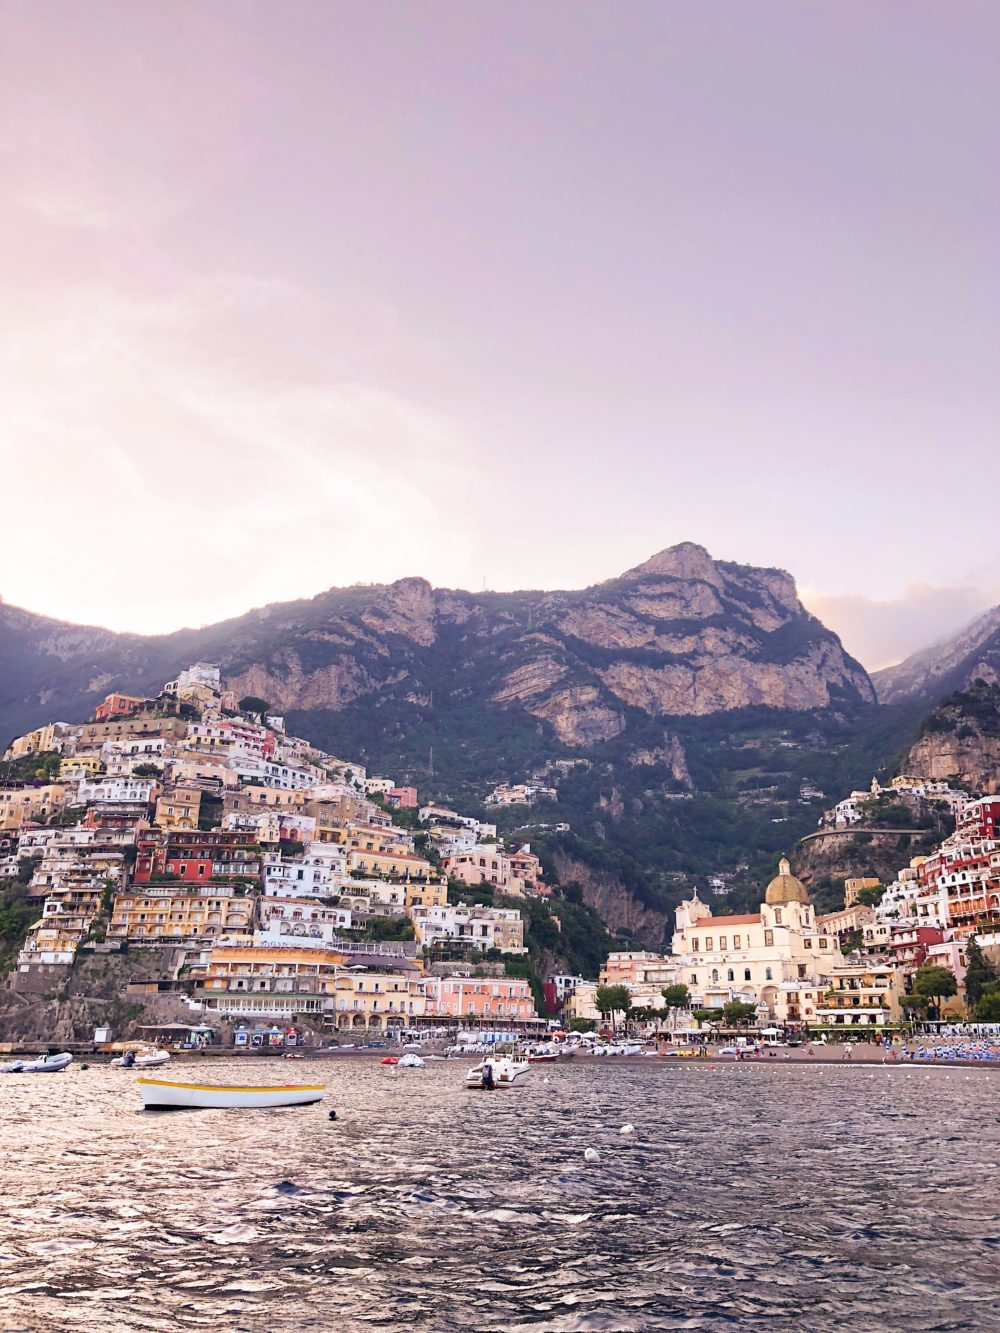 Positano-Italy-view-from-the-water-e1530896875574.jpg